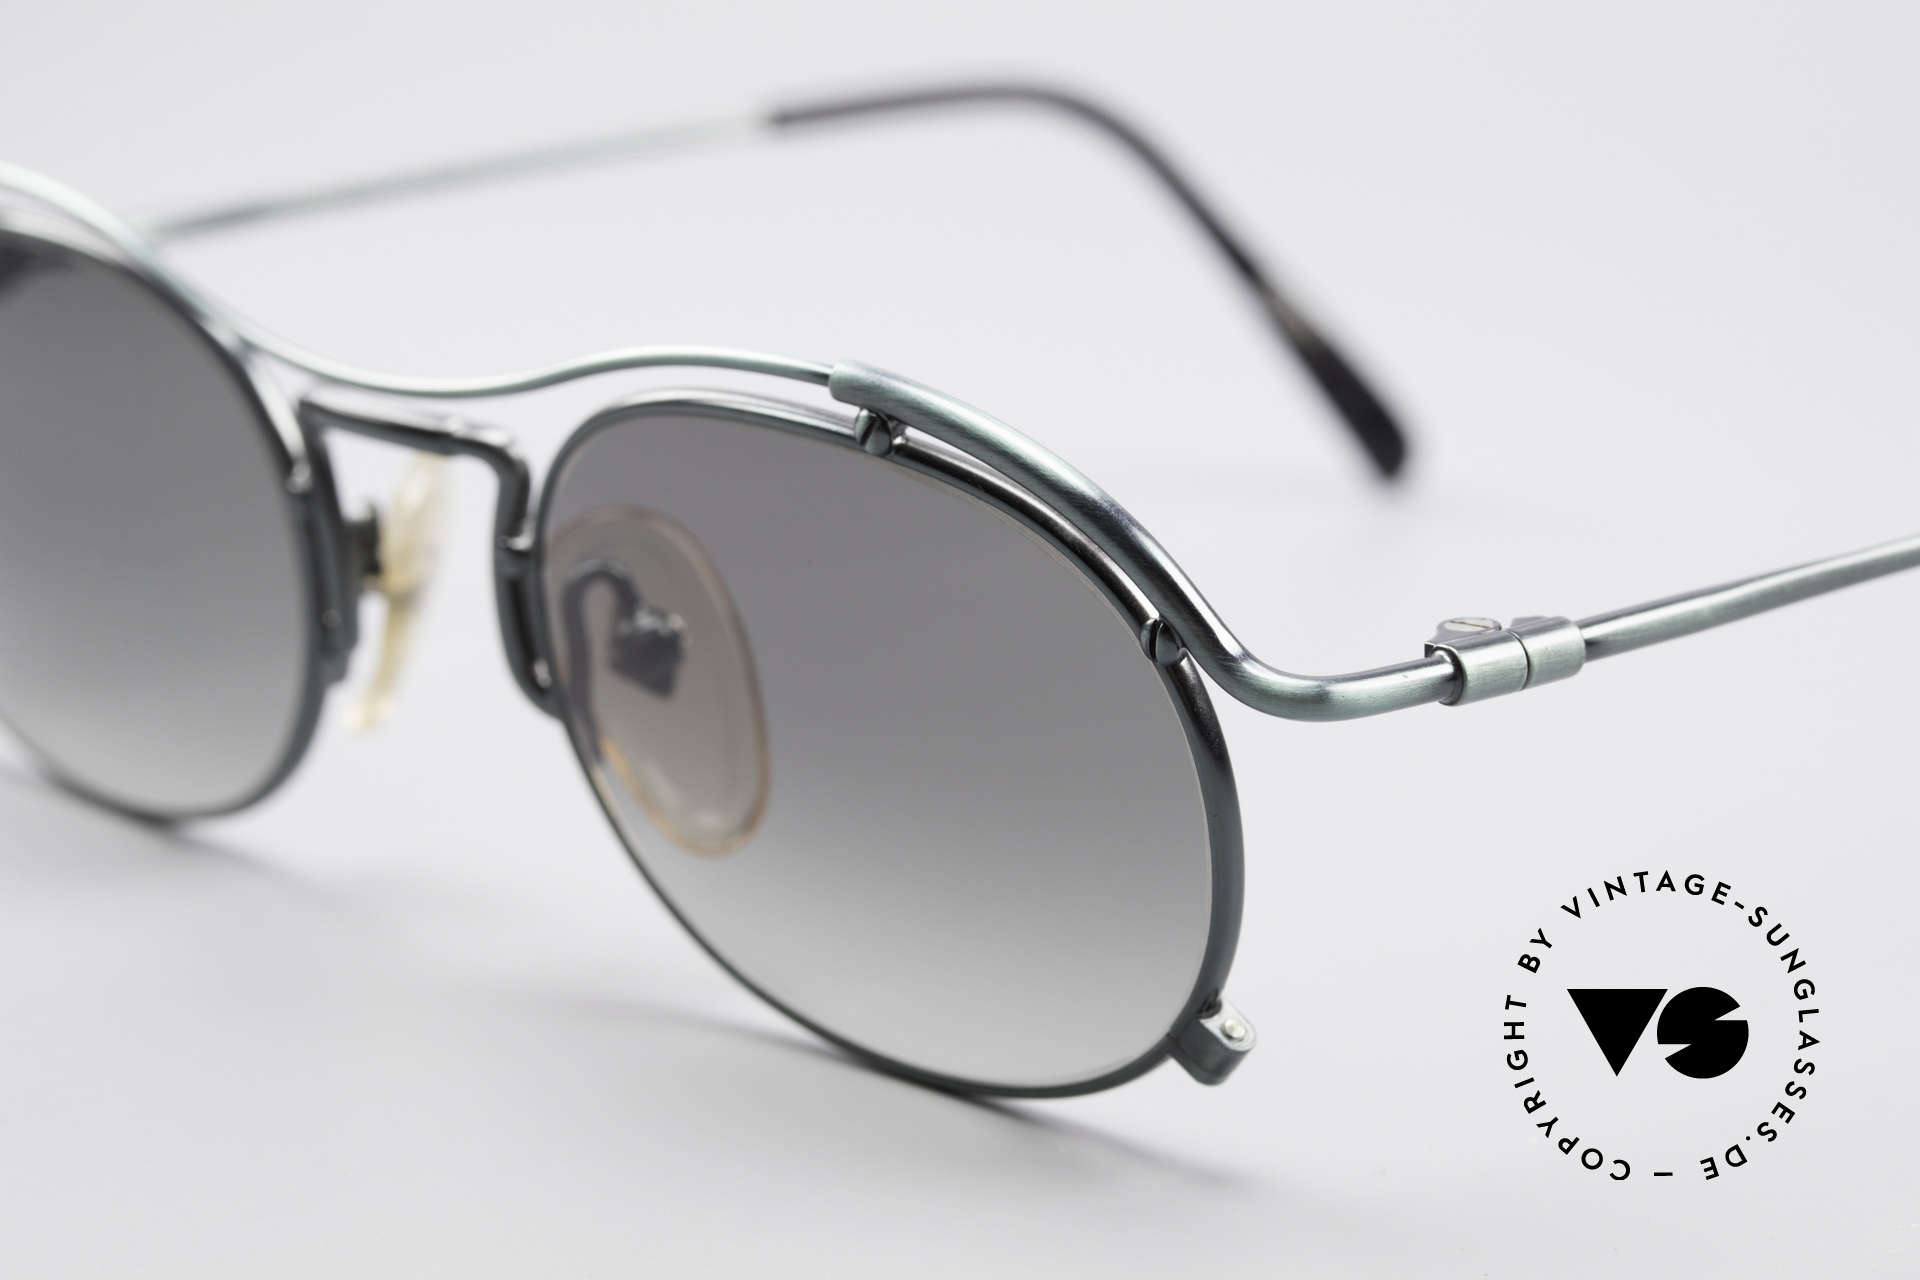 Jean Paul Gaultier 55-2170 Vintage 90's Sunglasses, enormous quality made in Japan; U must feel this!, Made for Men and Women